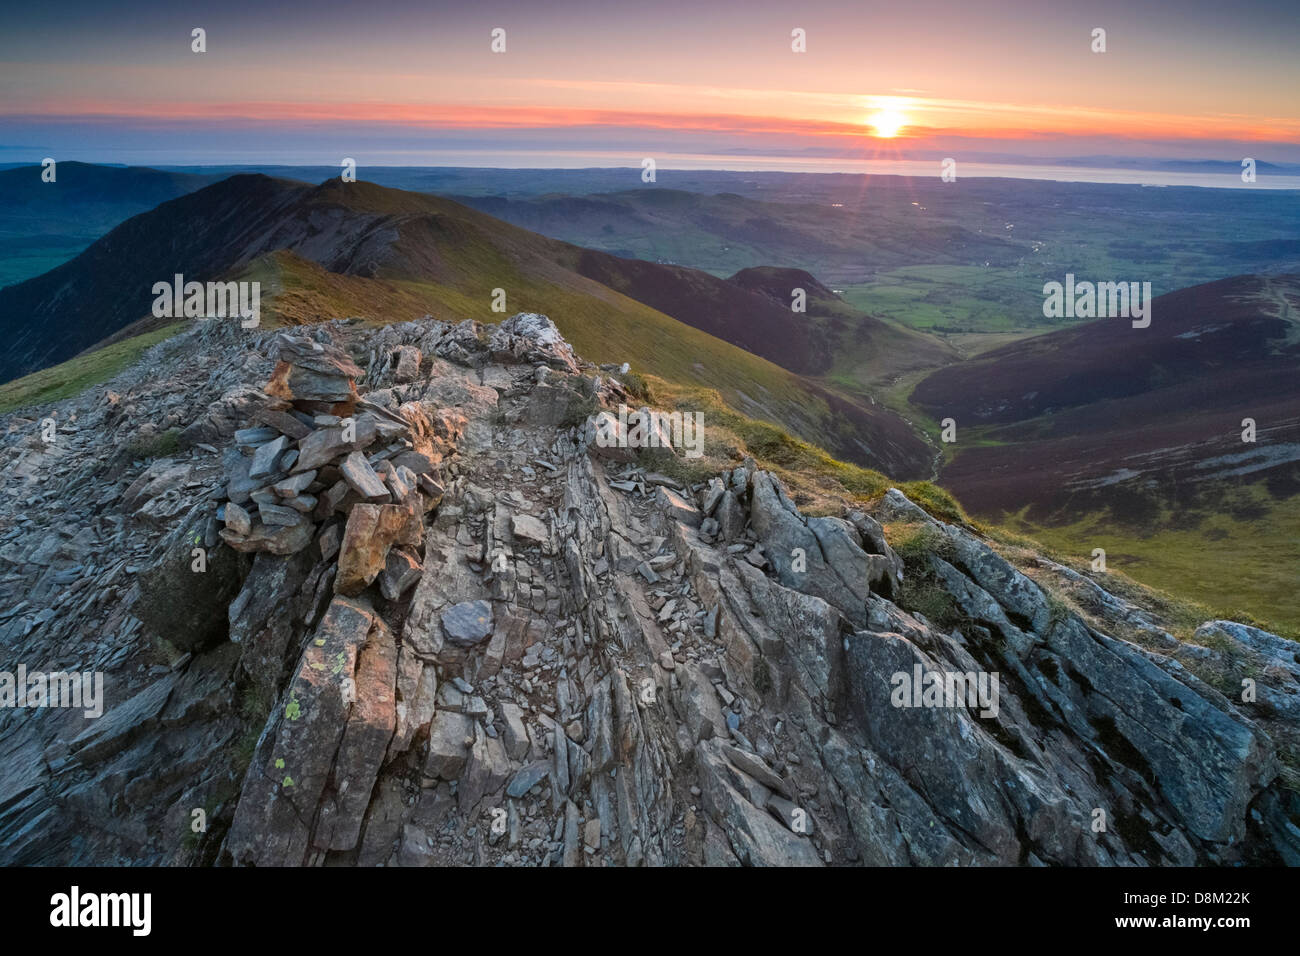 Looking towards Whiteside and Hope Gill from the summit of Hopegill Head at sunset in the Lake District. - Stock Image